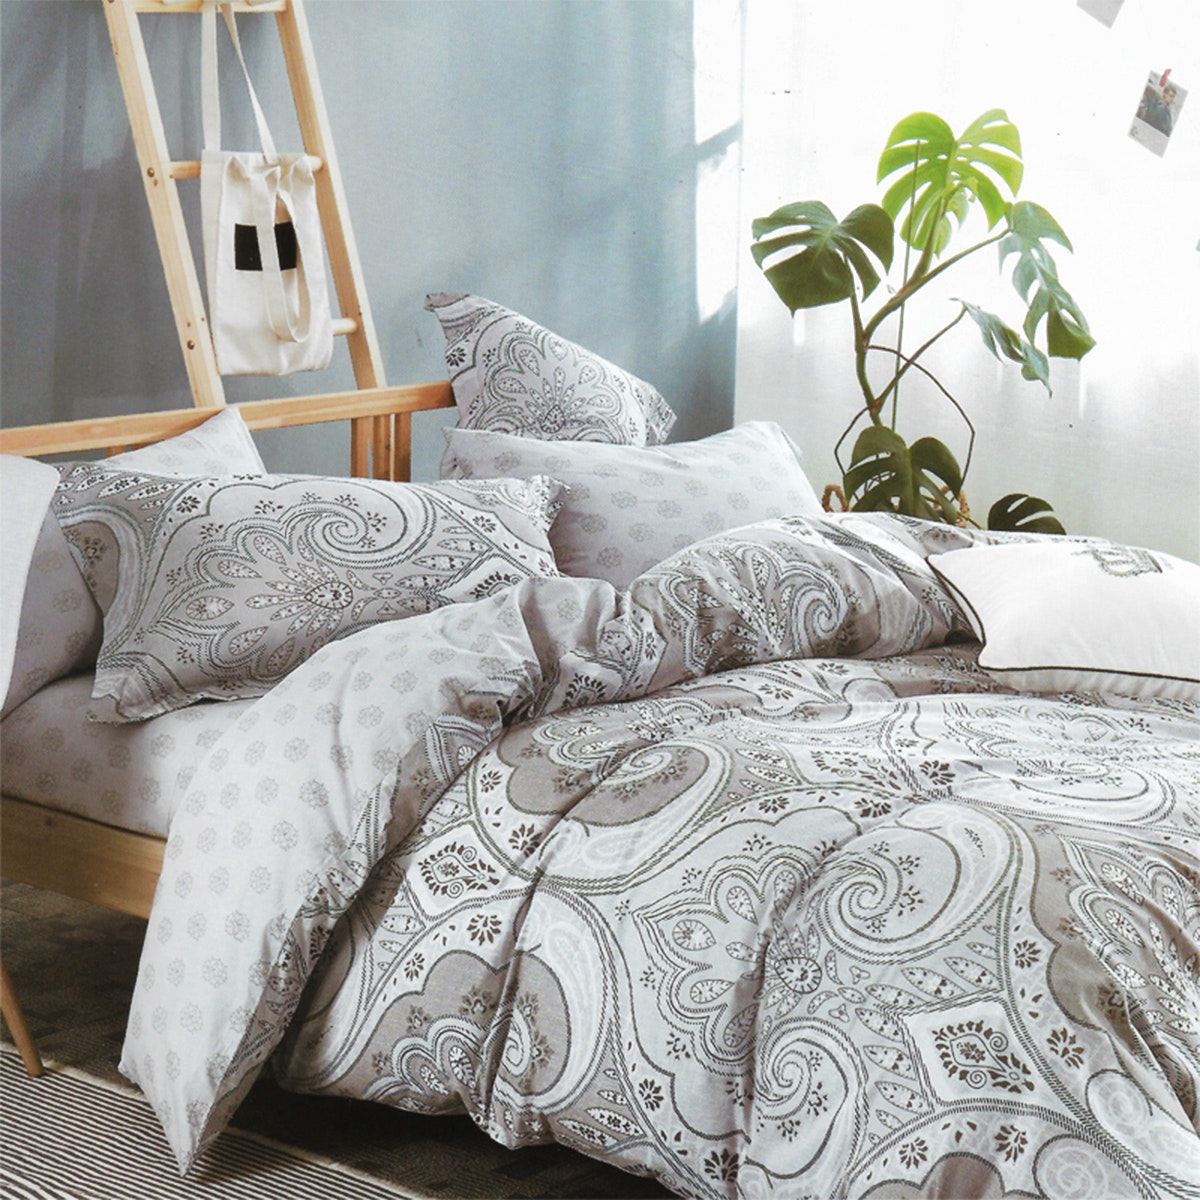 Sleep Buddy Set Sprei dan Bed Cover Classic Grey Cotton Sateen 160x200x30